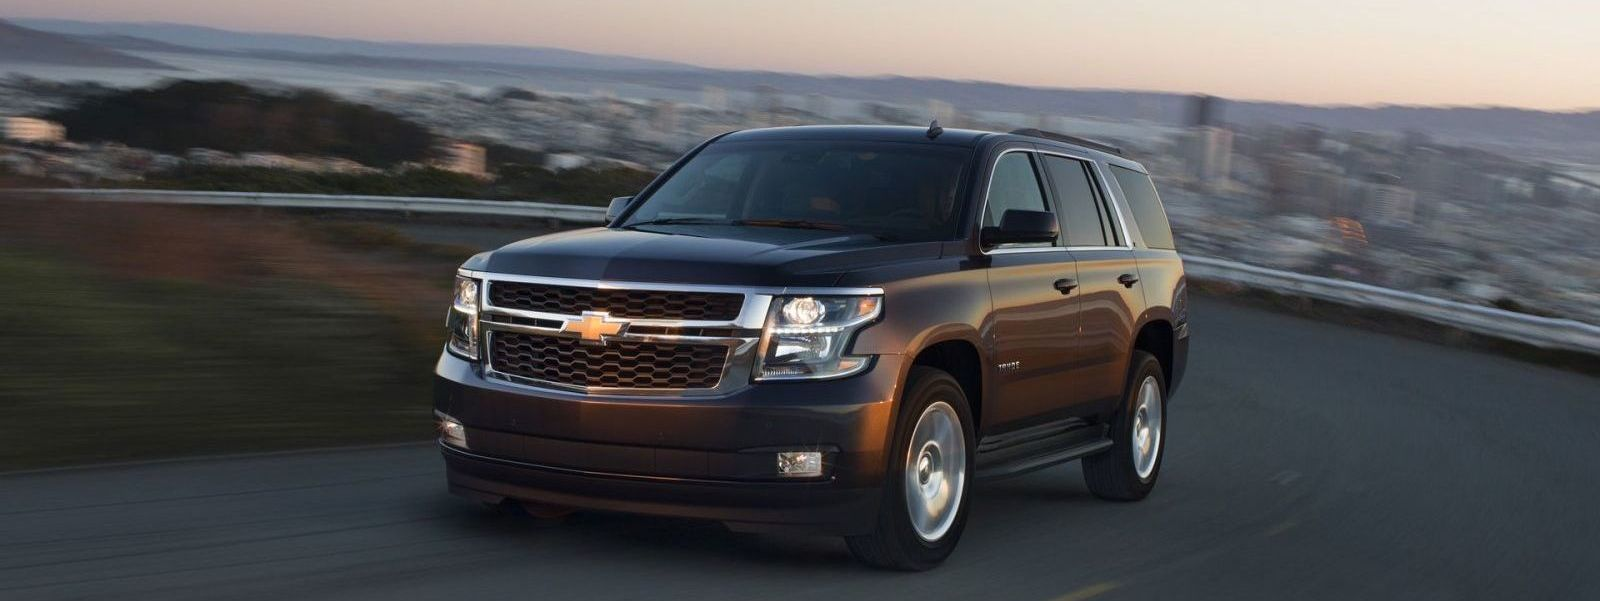 2017 Chevrolet Tahoe for Sale near Washington, DC